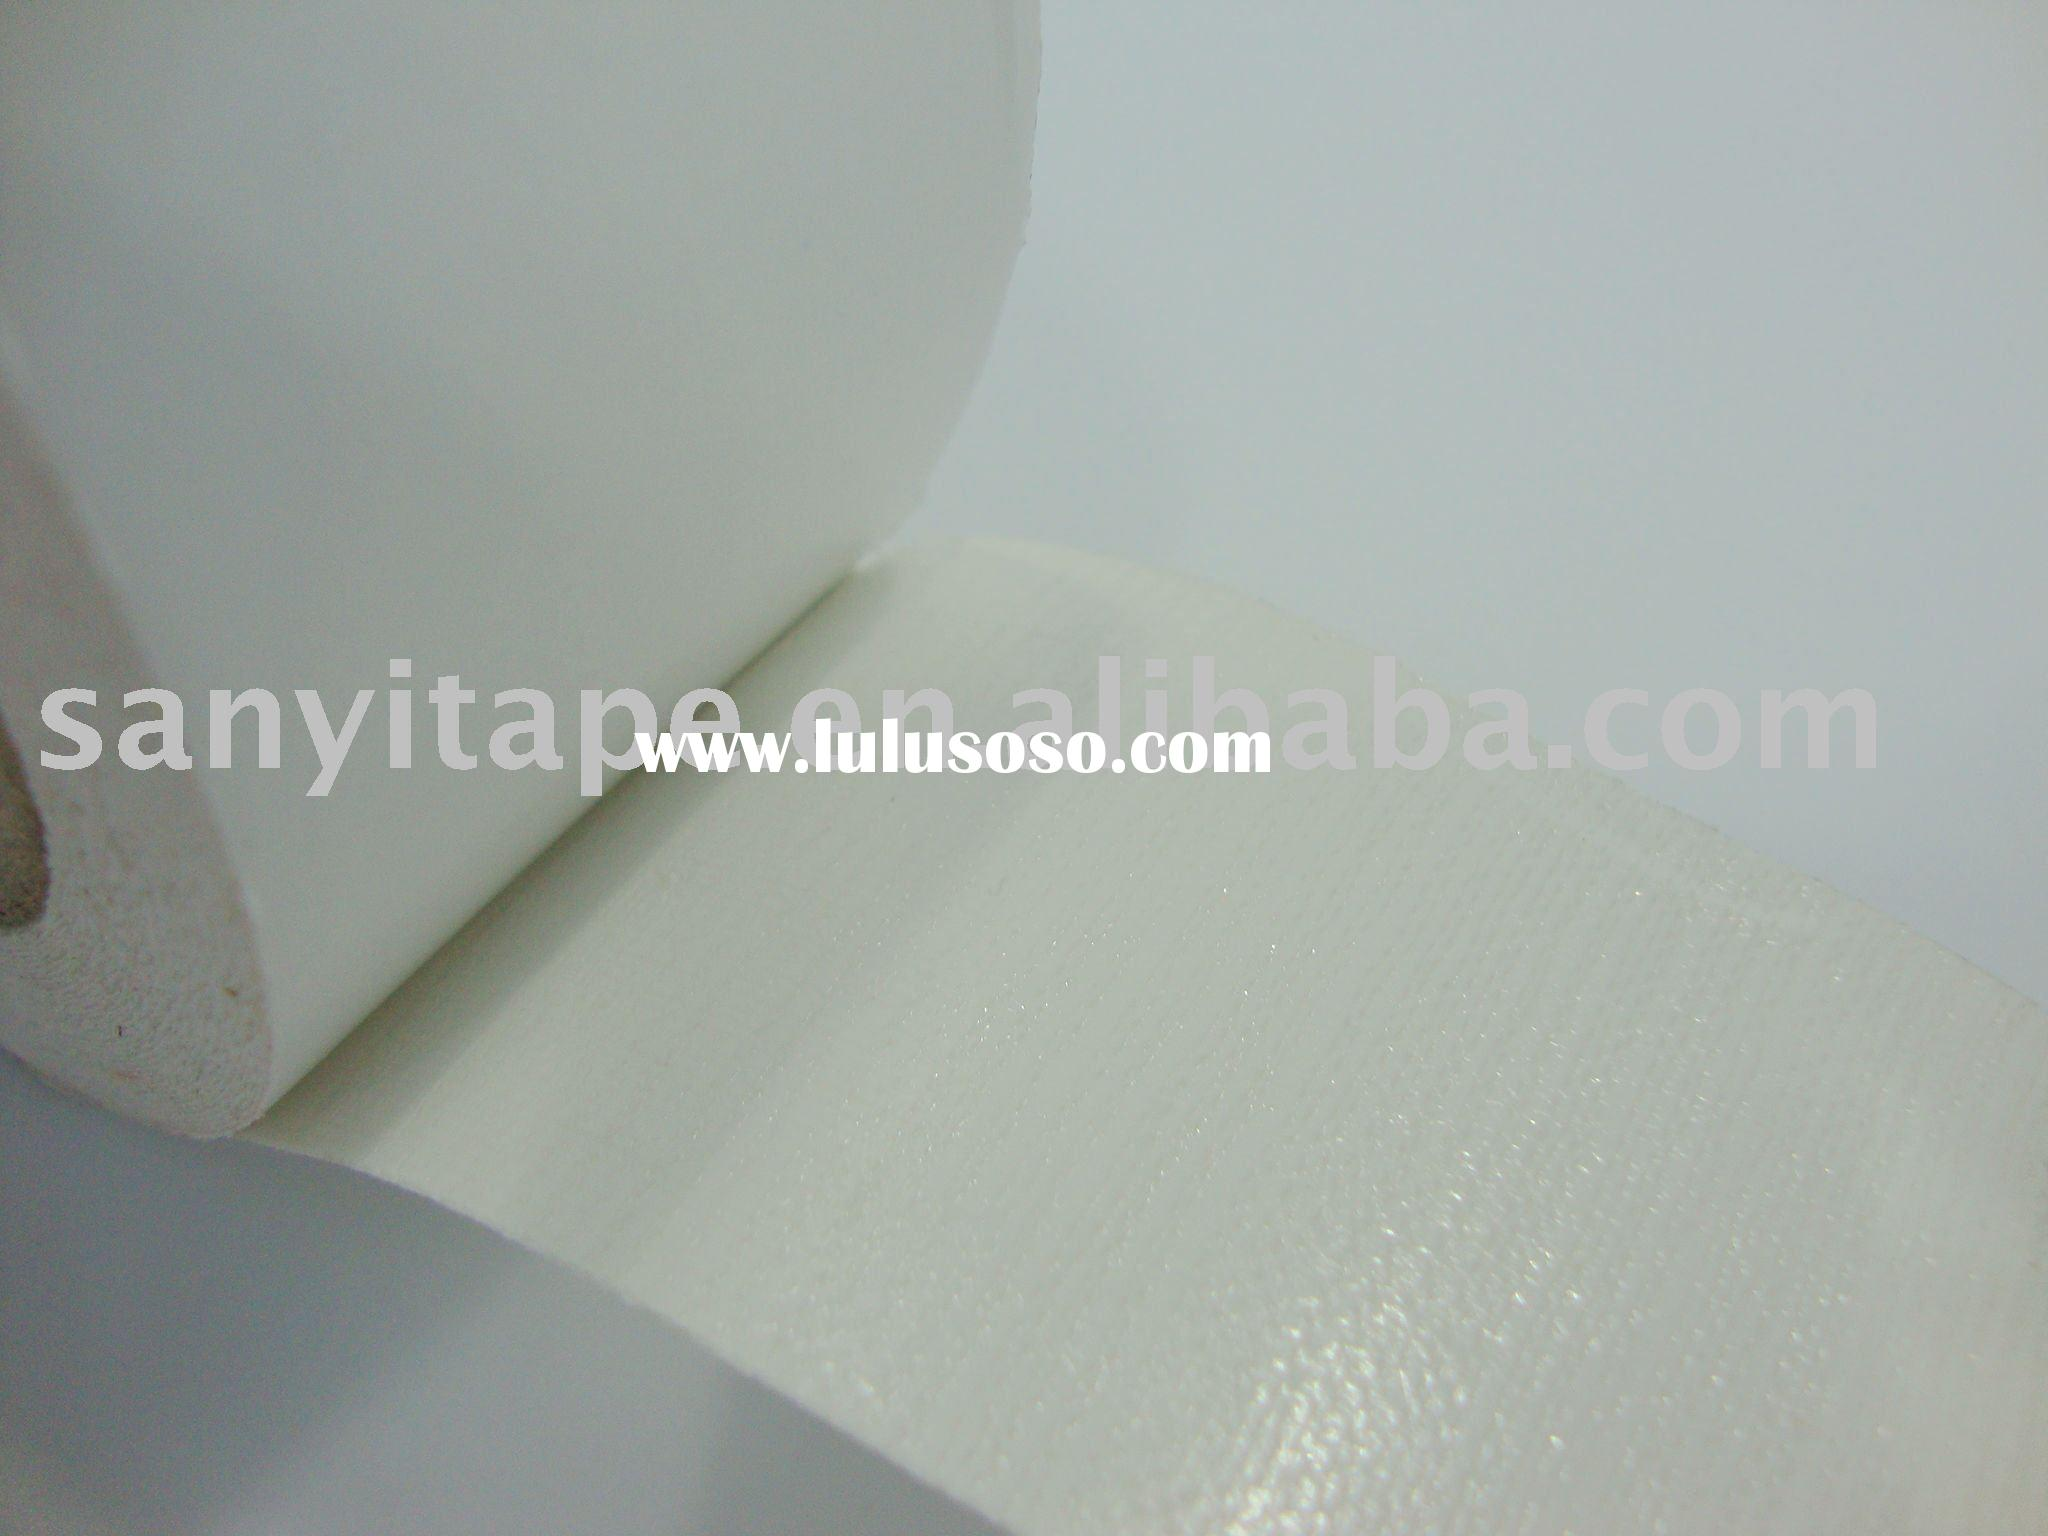 highly adhesive carpet tape